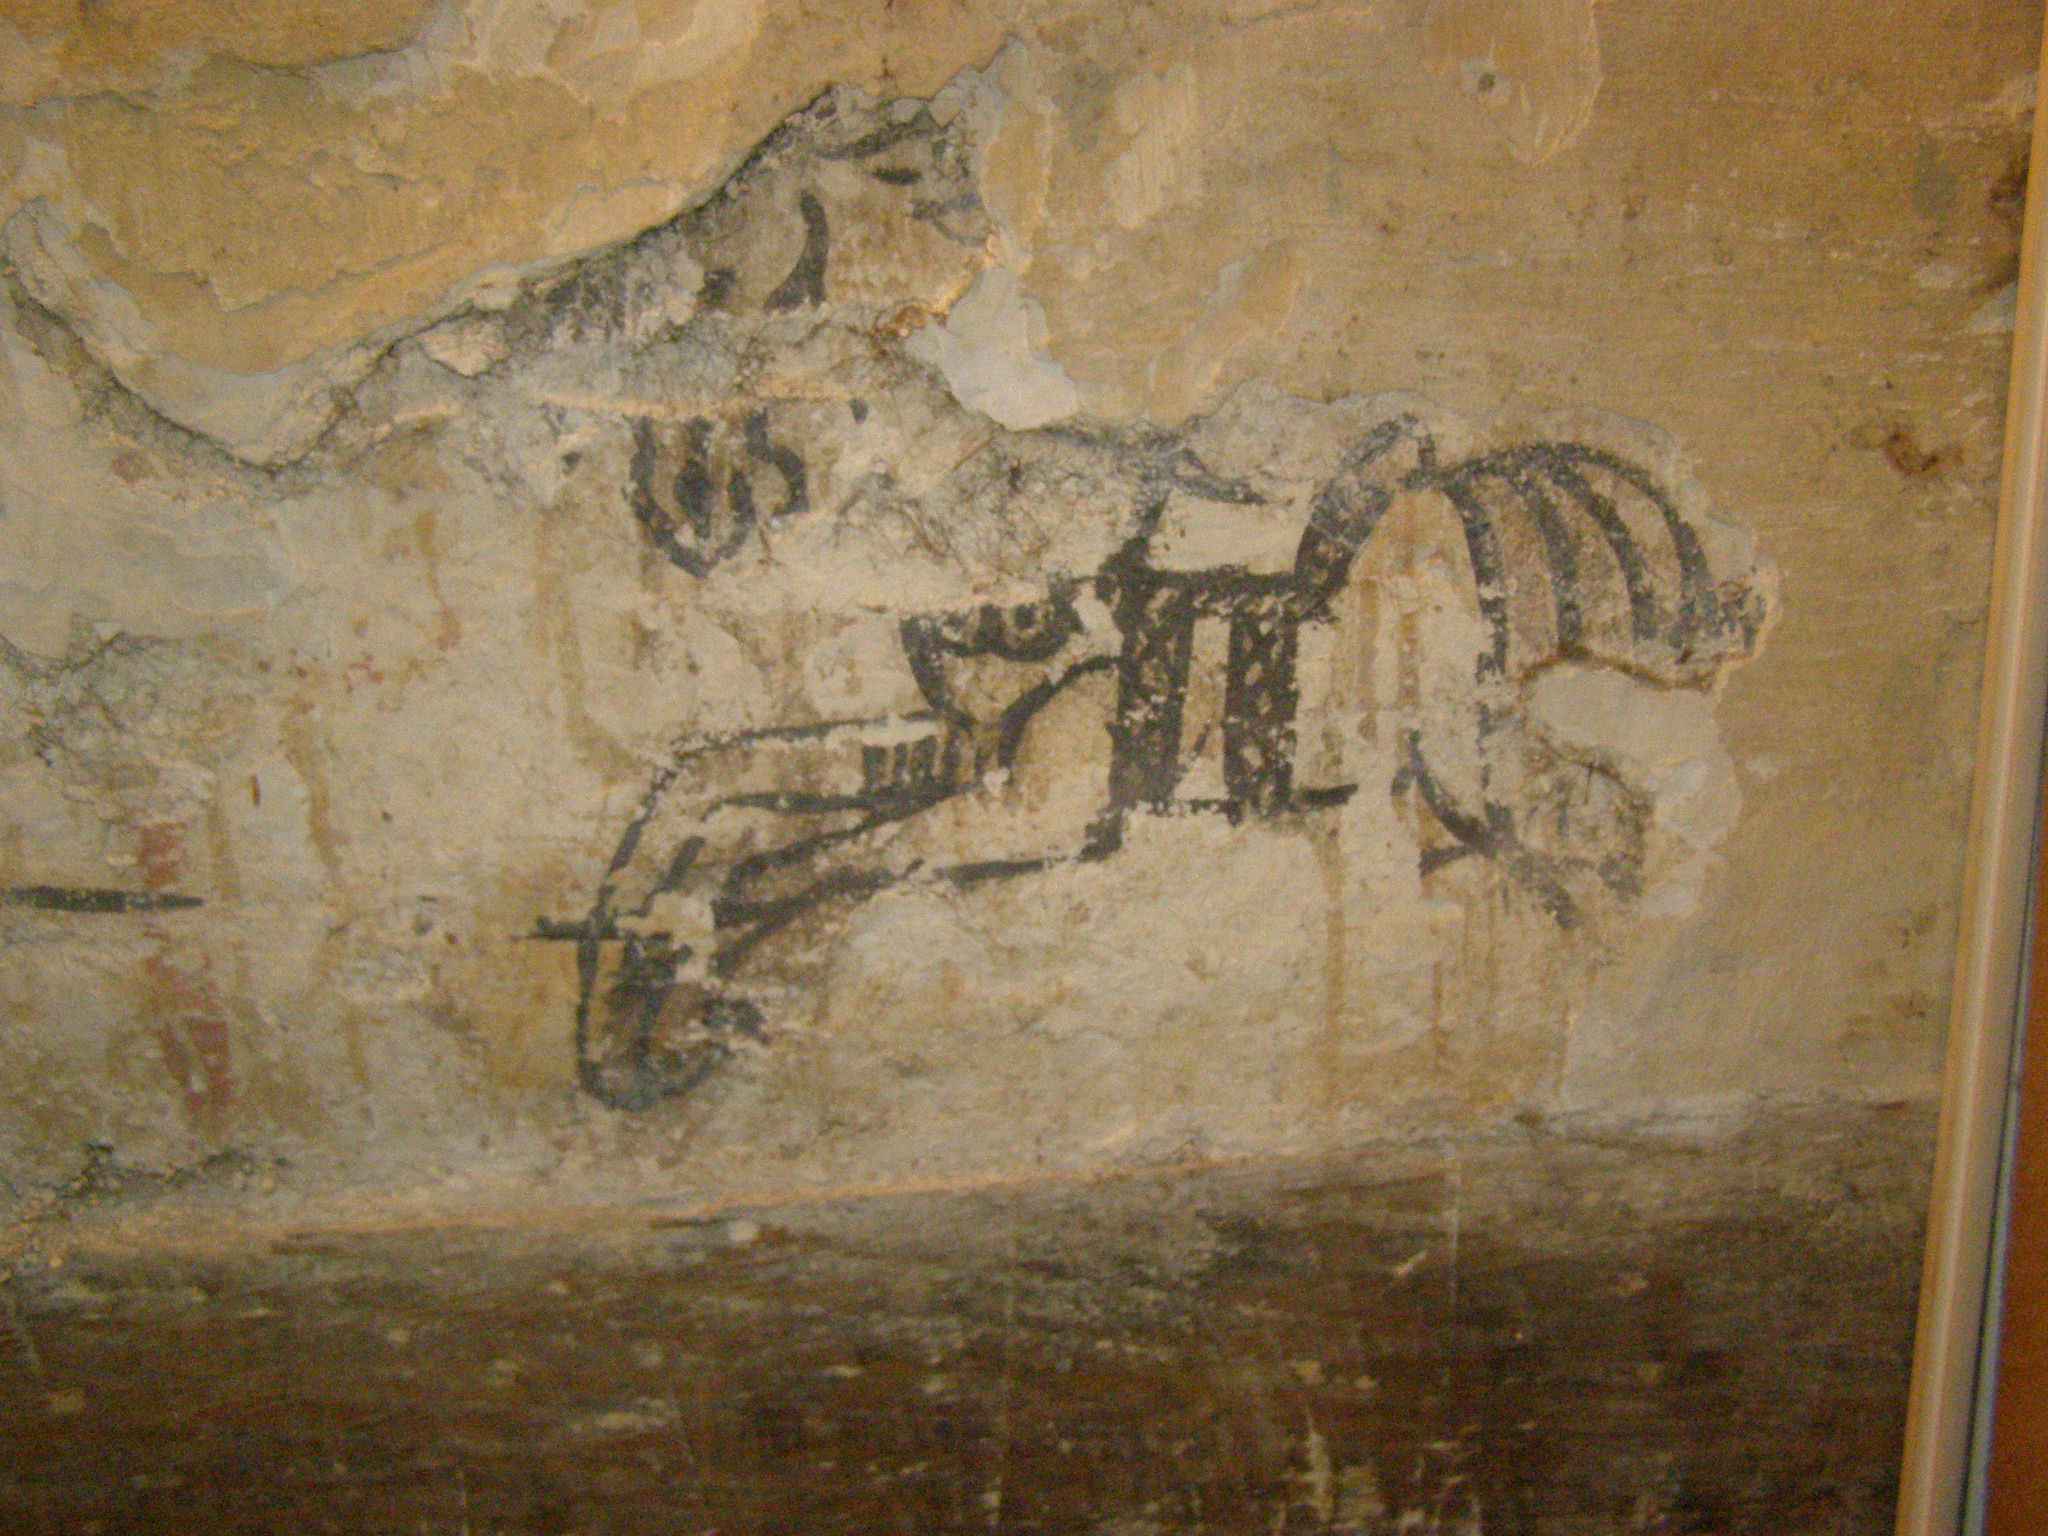 Wall mural of a horse, found inside William Mullins house in Dorking, co. Surrey, England.